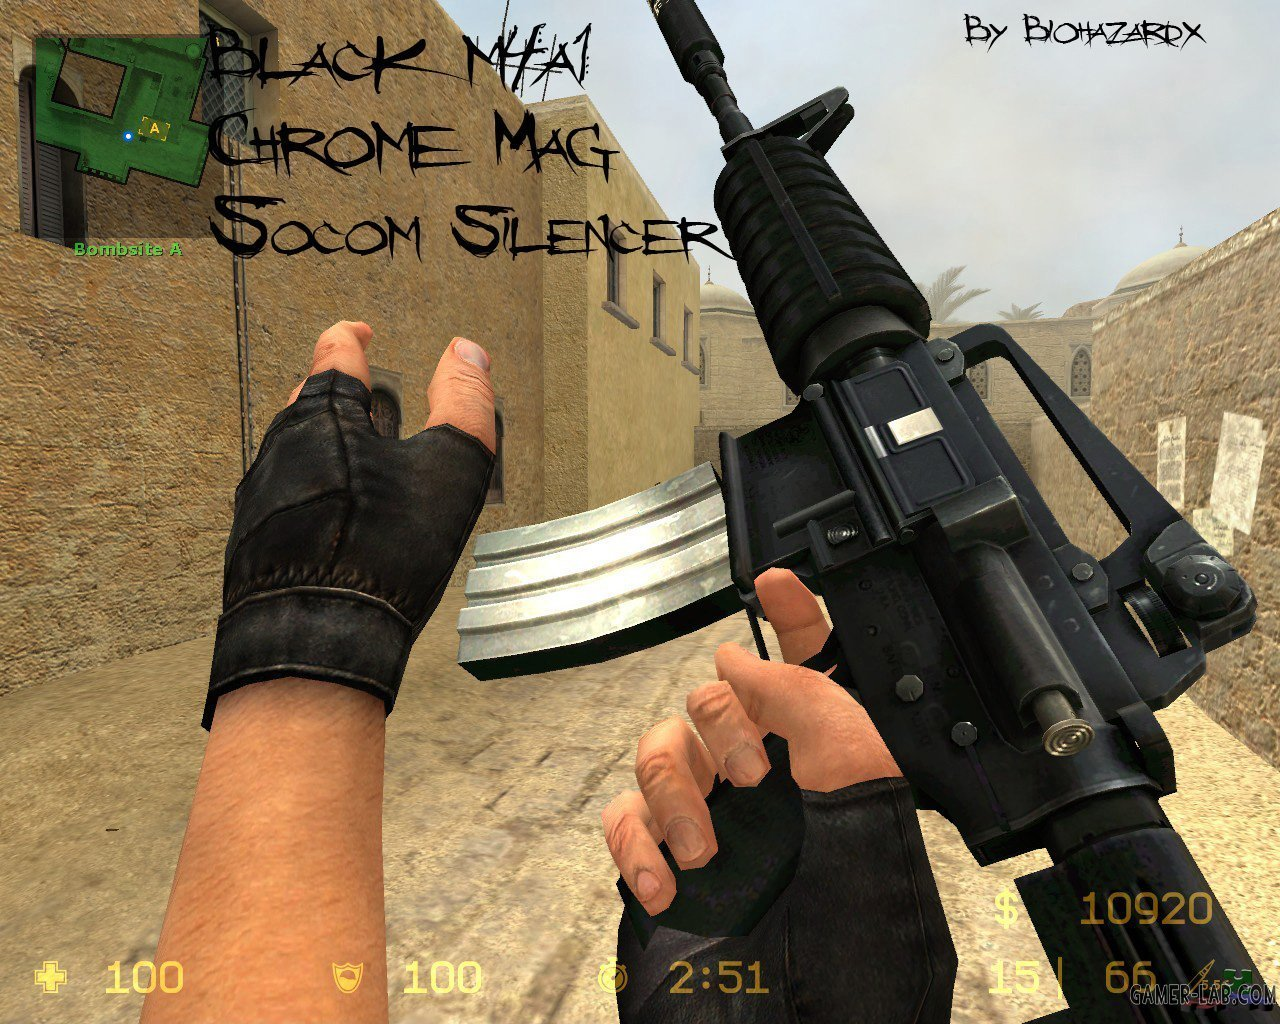 Black_M4a1_W_Chrome_Mag_And_Socom_Silencer